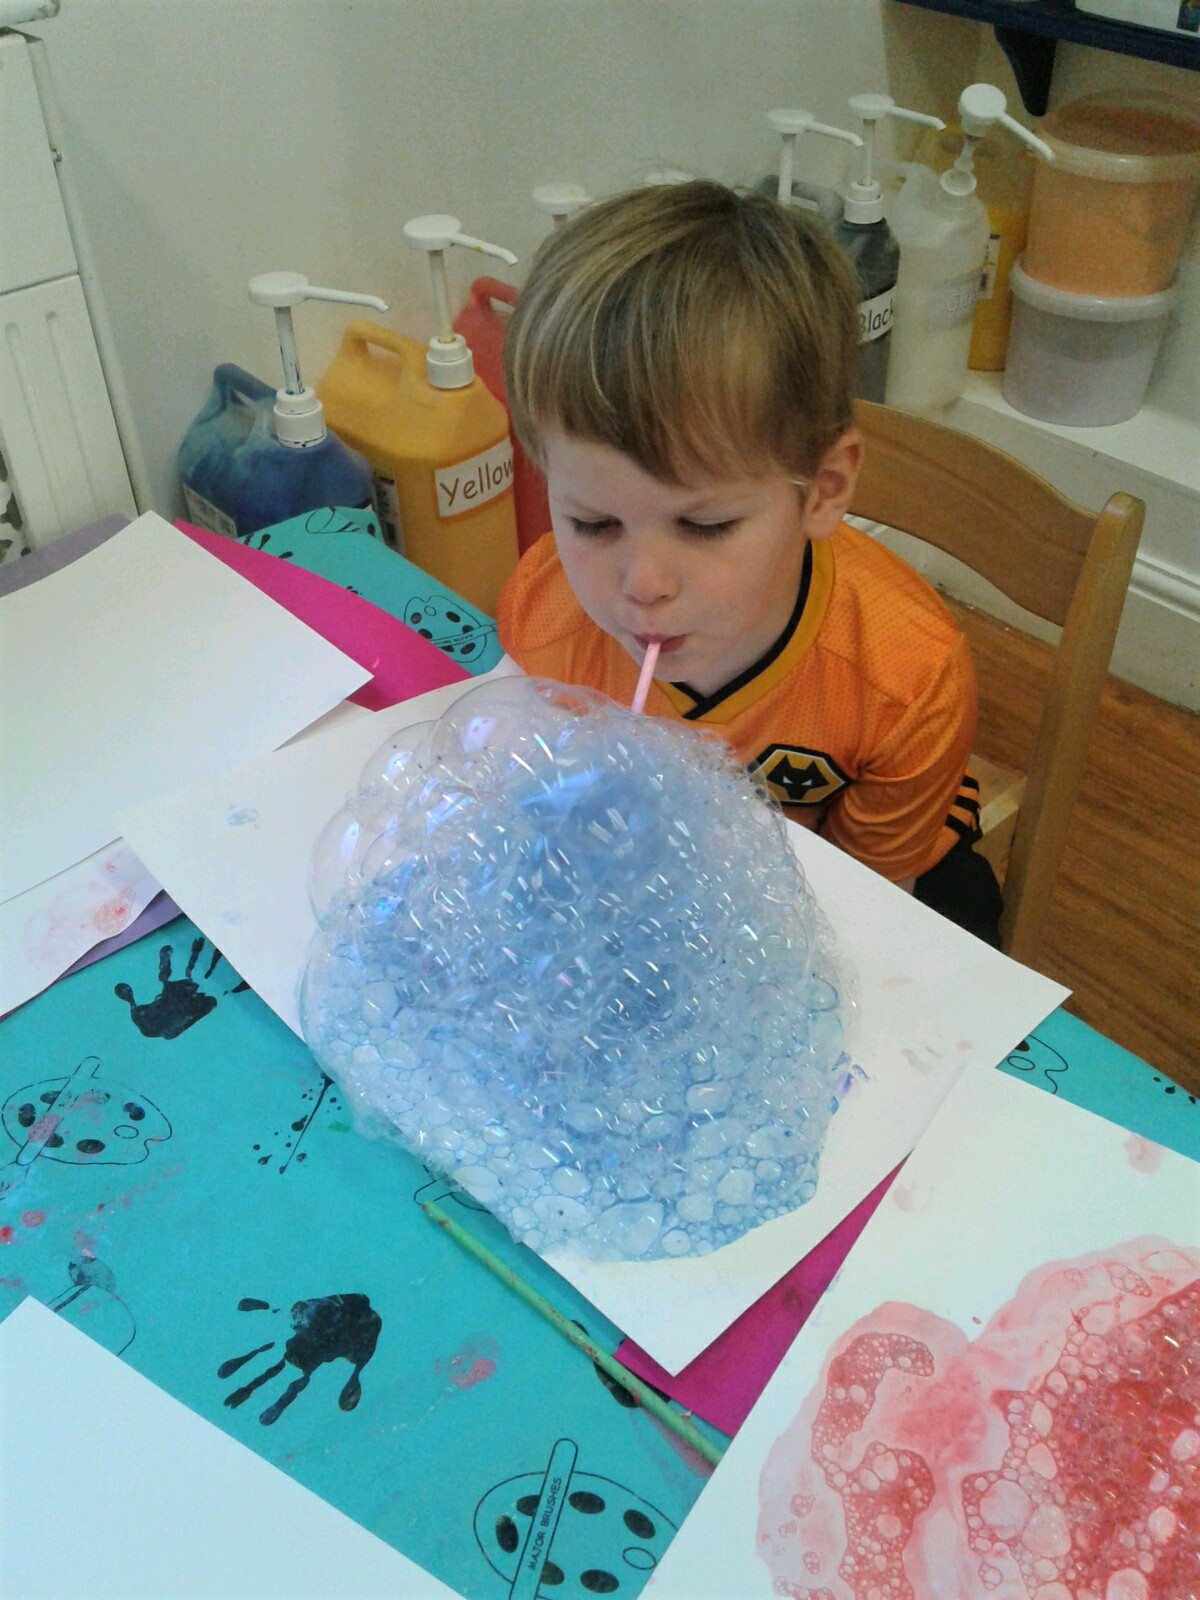 This week we had great fun exploring bubble painting.